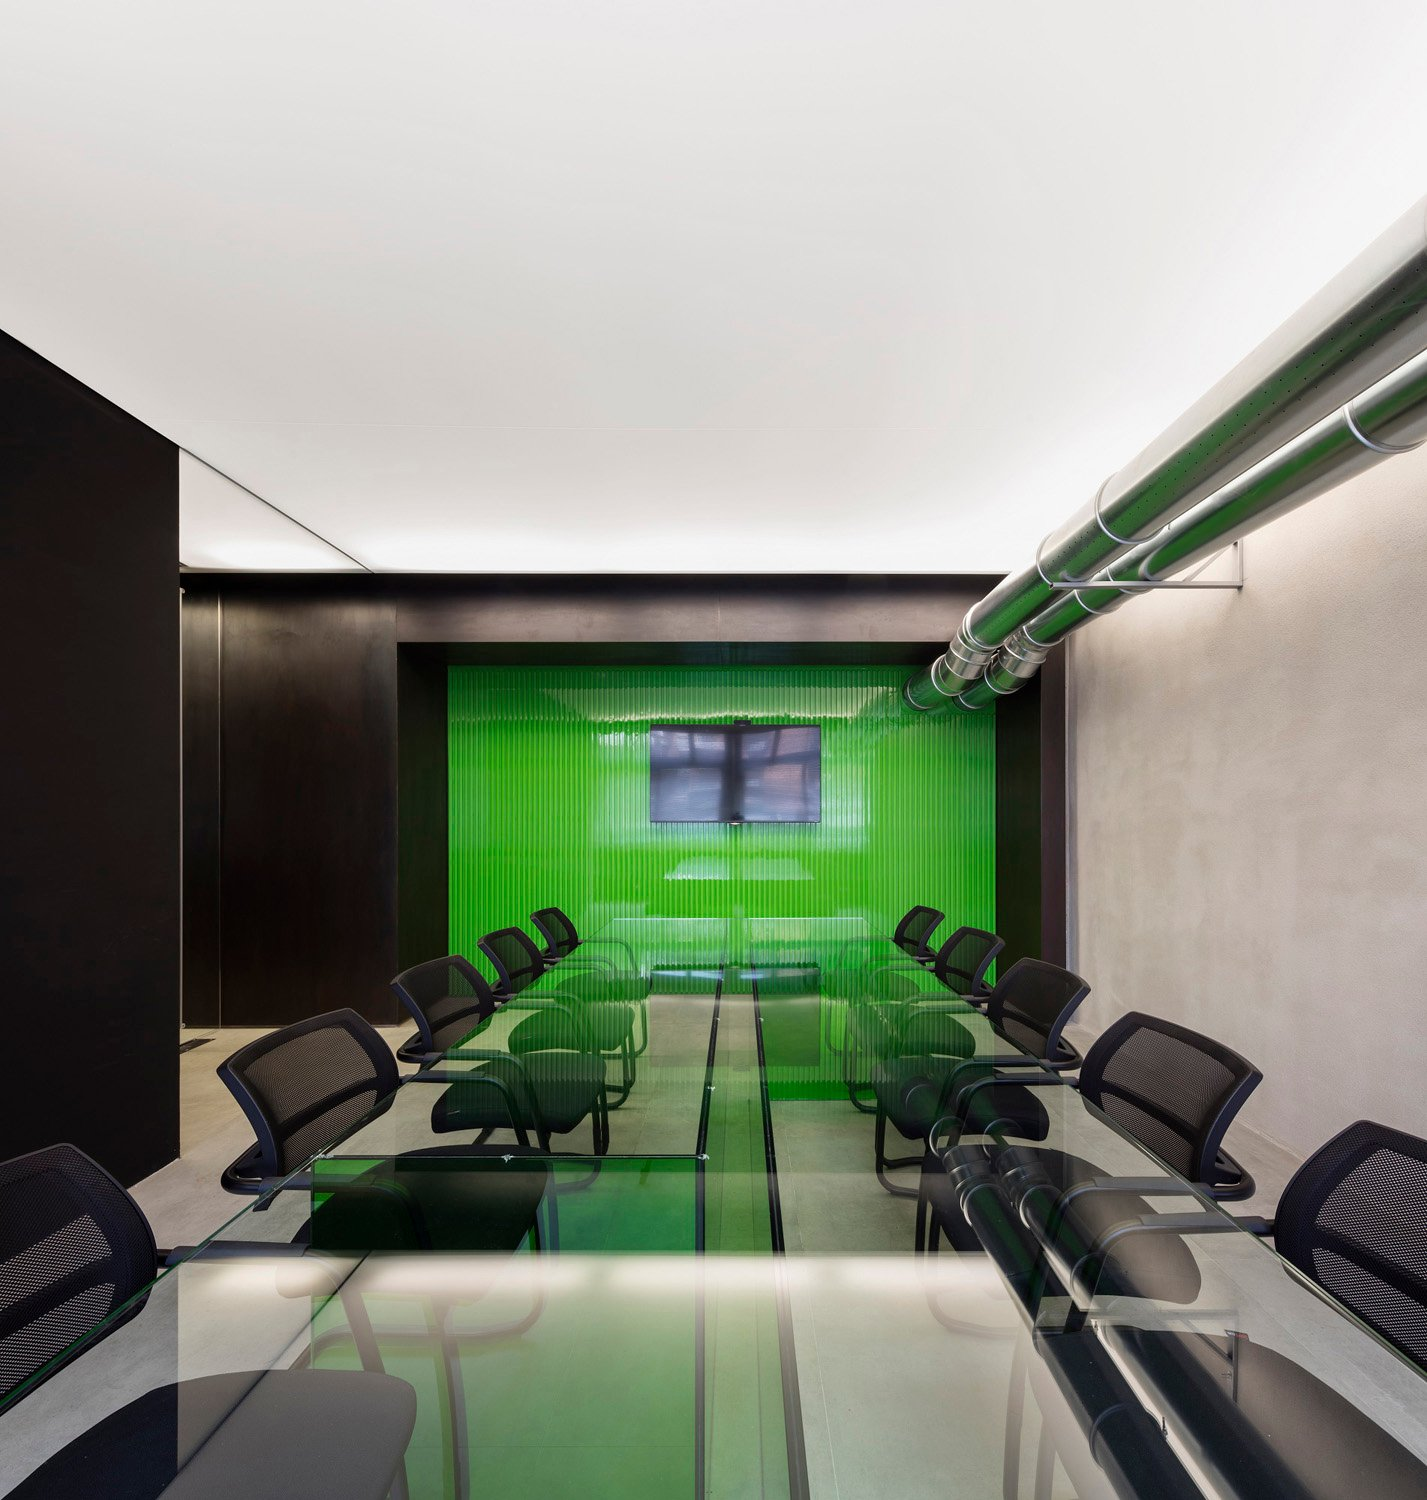 The meeting room at the bottom of the space